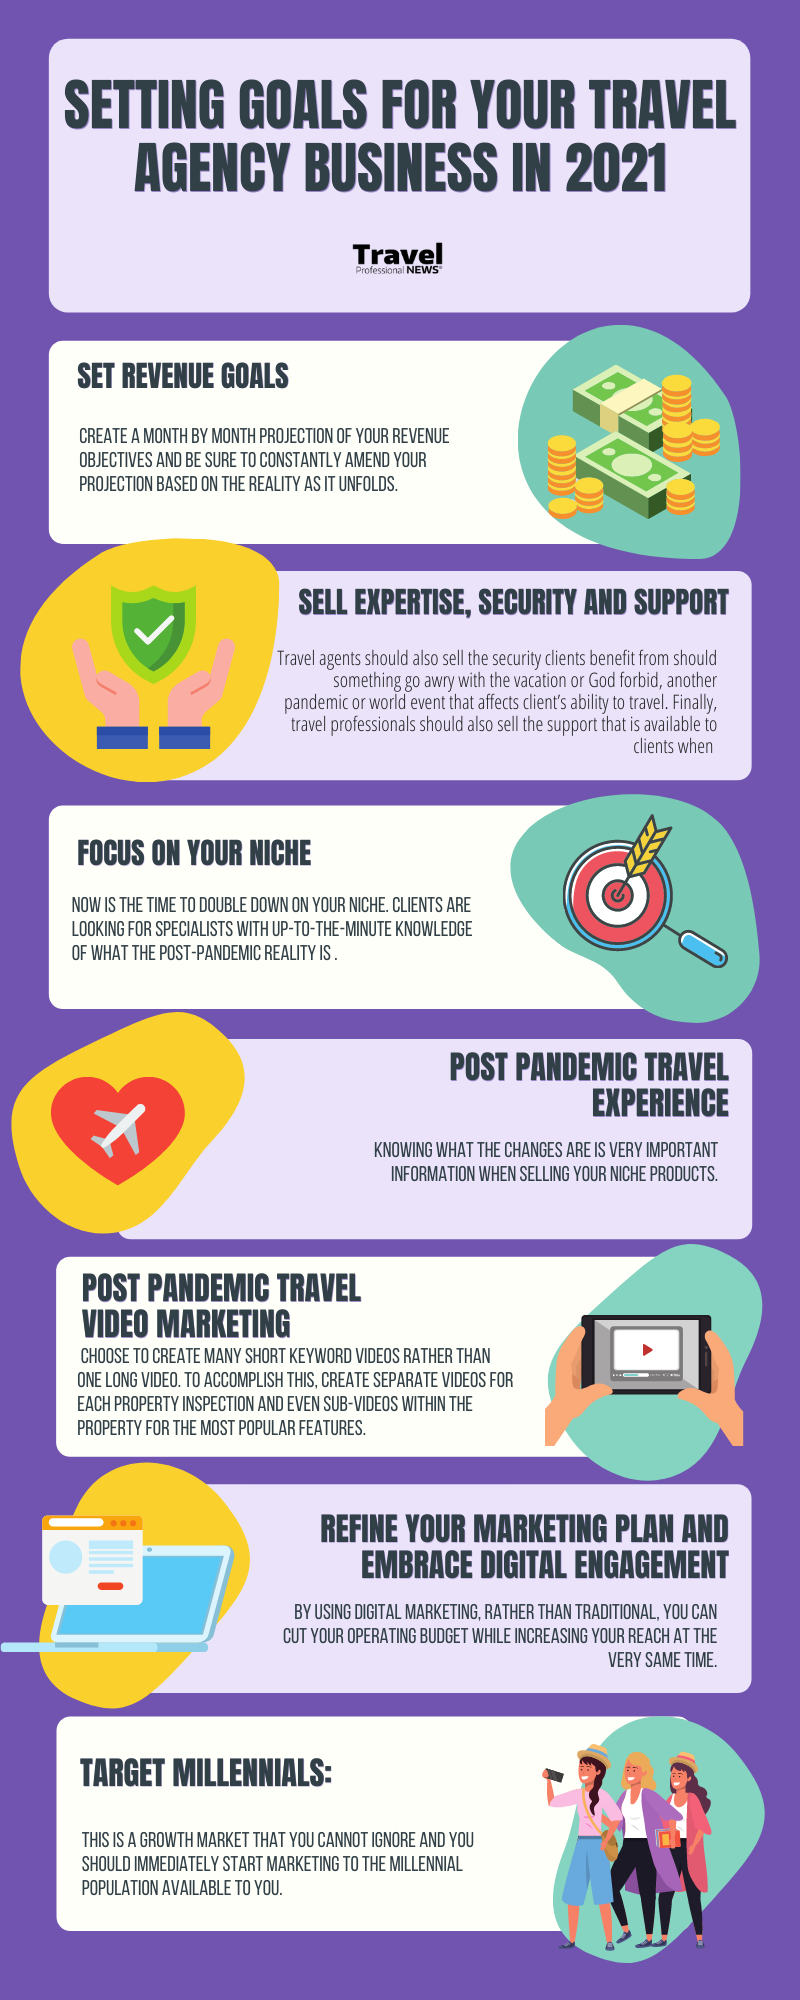 Setting Goals for Your Home Based Travel Agency Business in 2021 Infographic